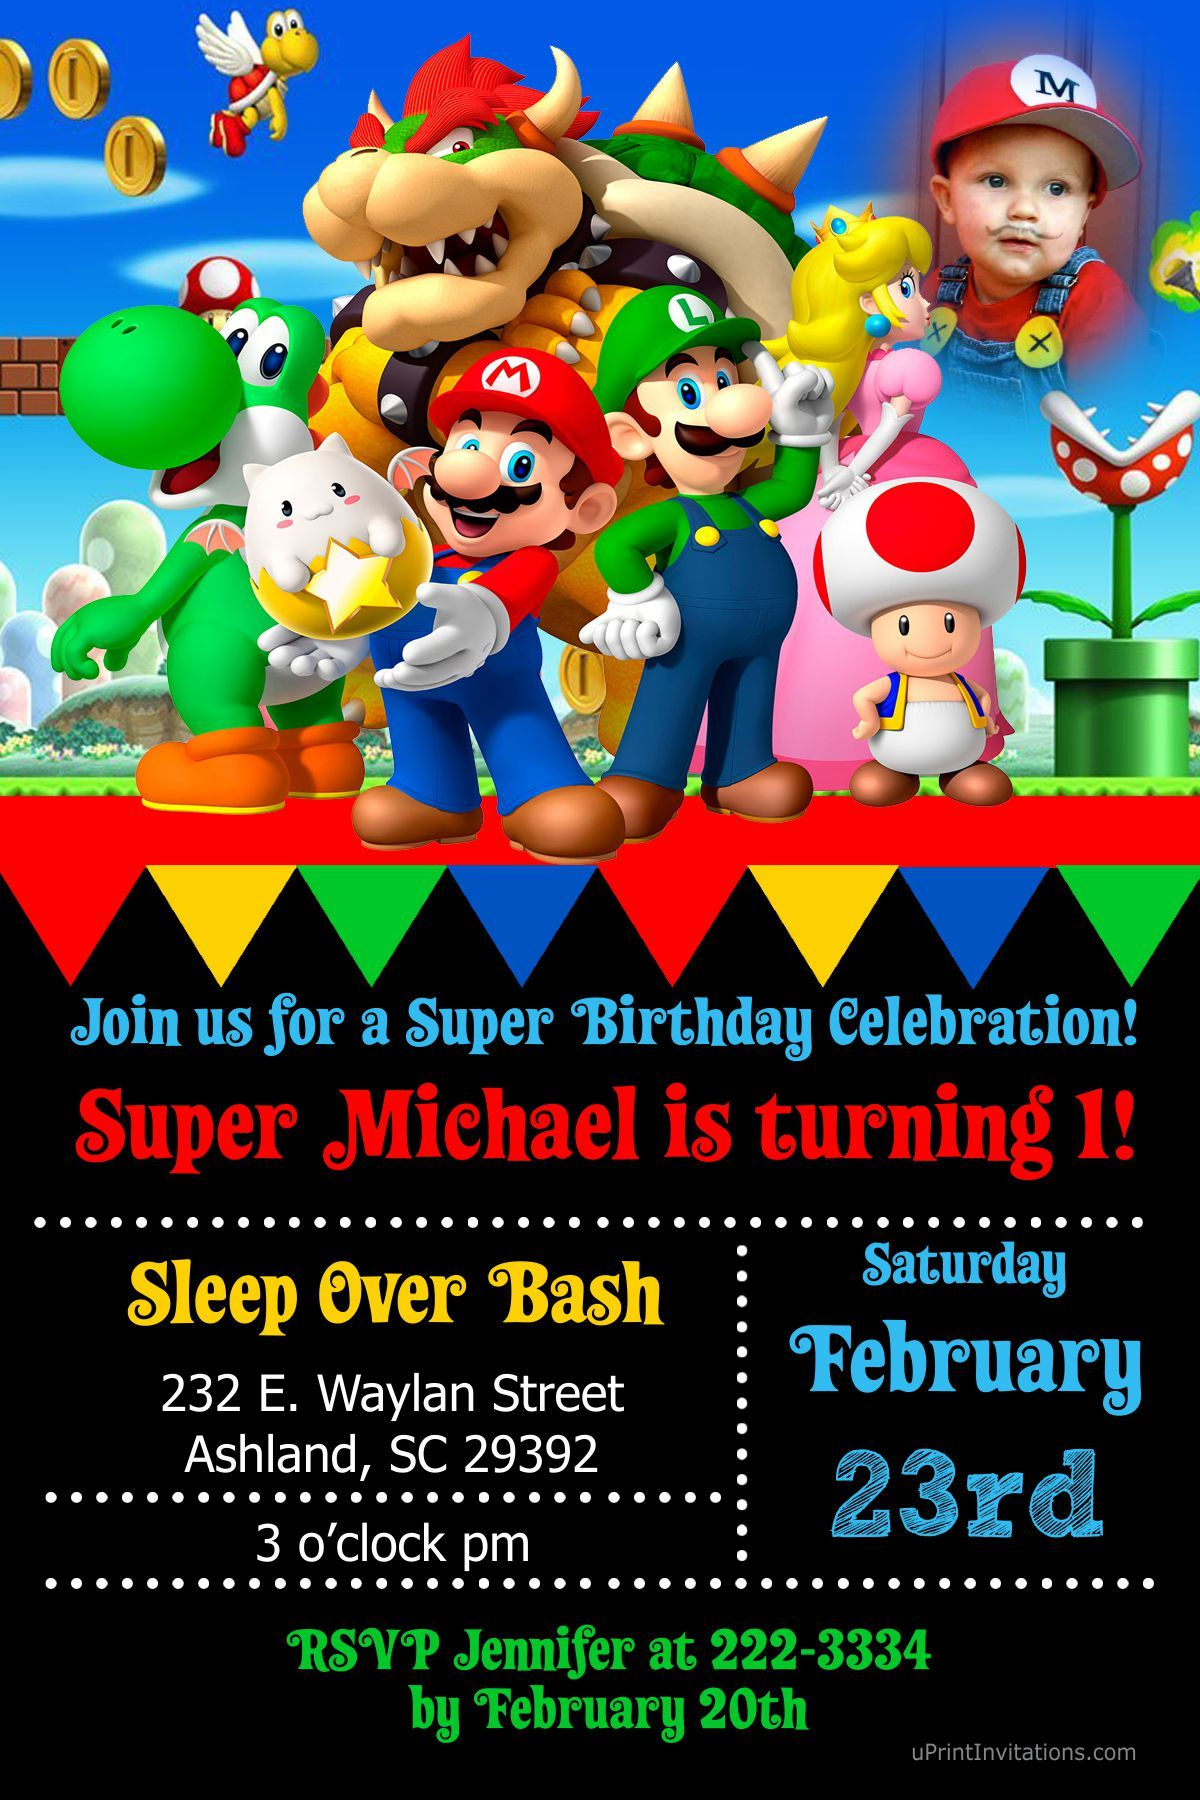 Super Mario Party Birthday Invitations - Digital Download - Get ...